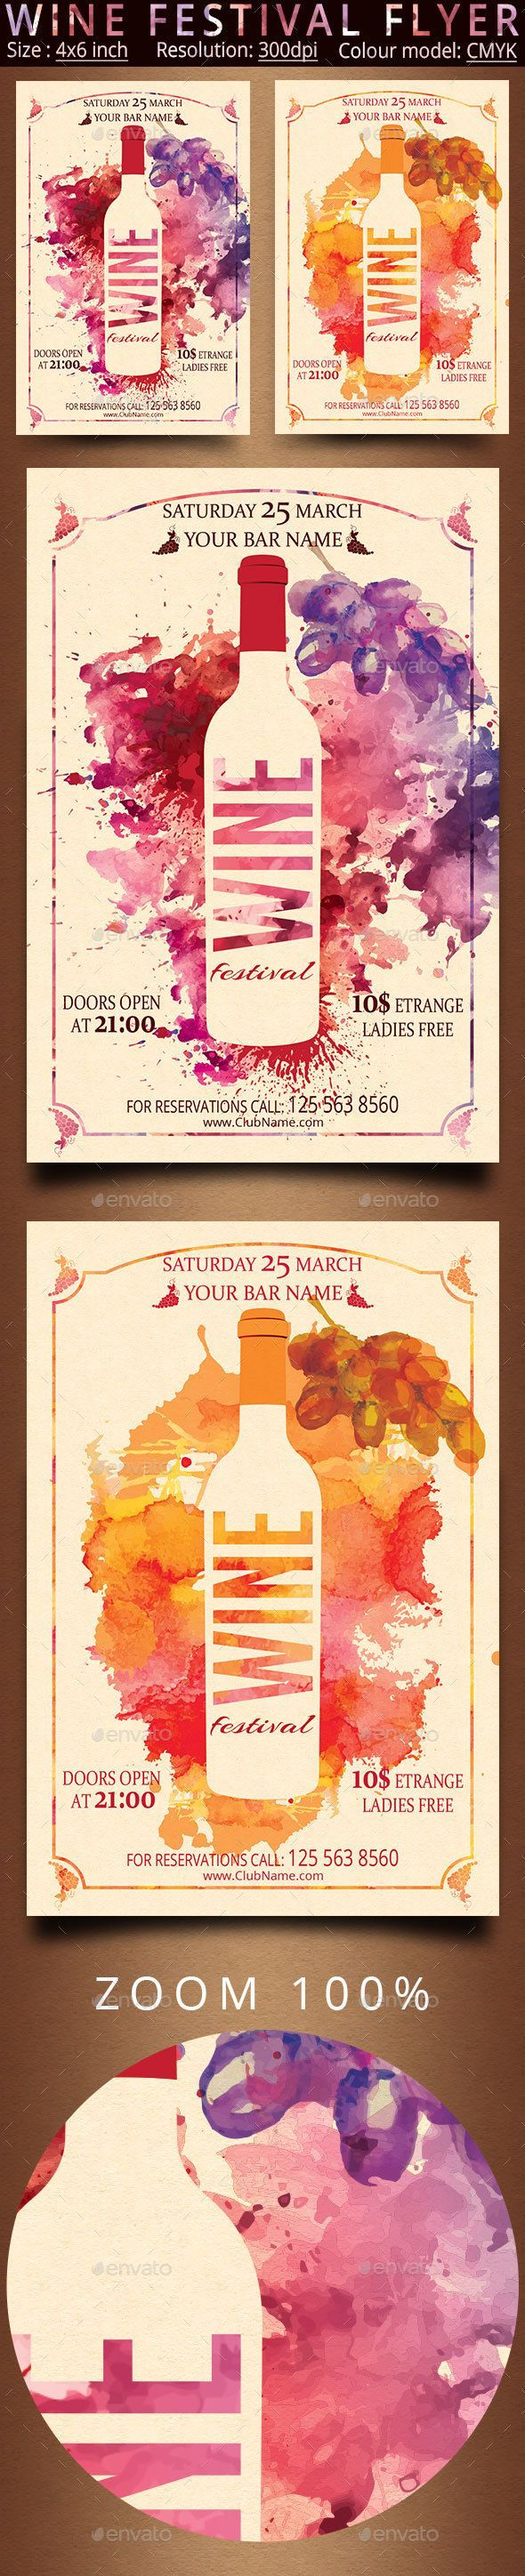 Wine Festival Flyer Template PSD. Download here: http://graphicriver.net/item/wine-festival-flyer/15701788?ref=ksioks